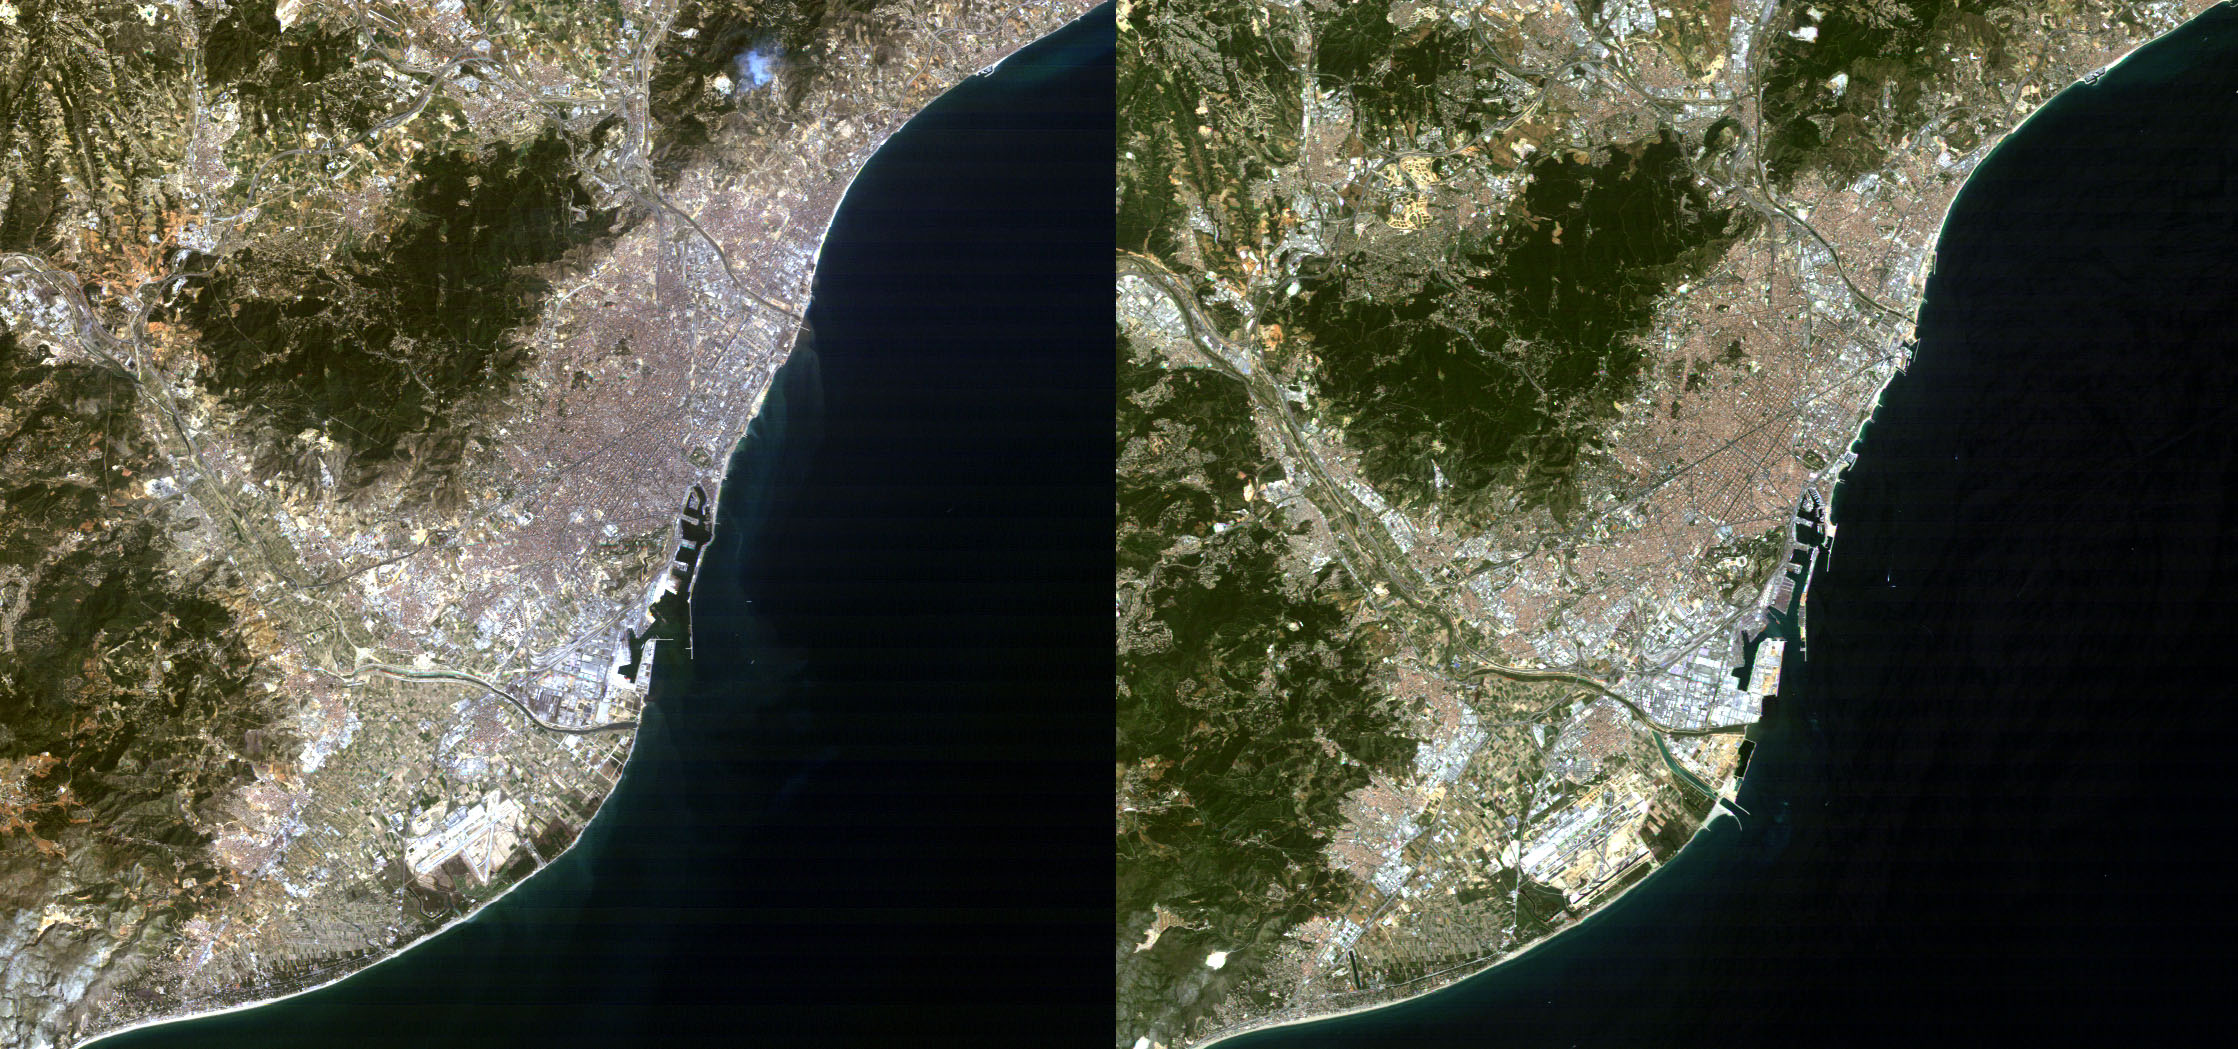 Barcelona in 1984 and 2004